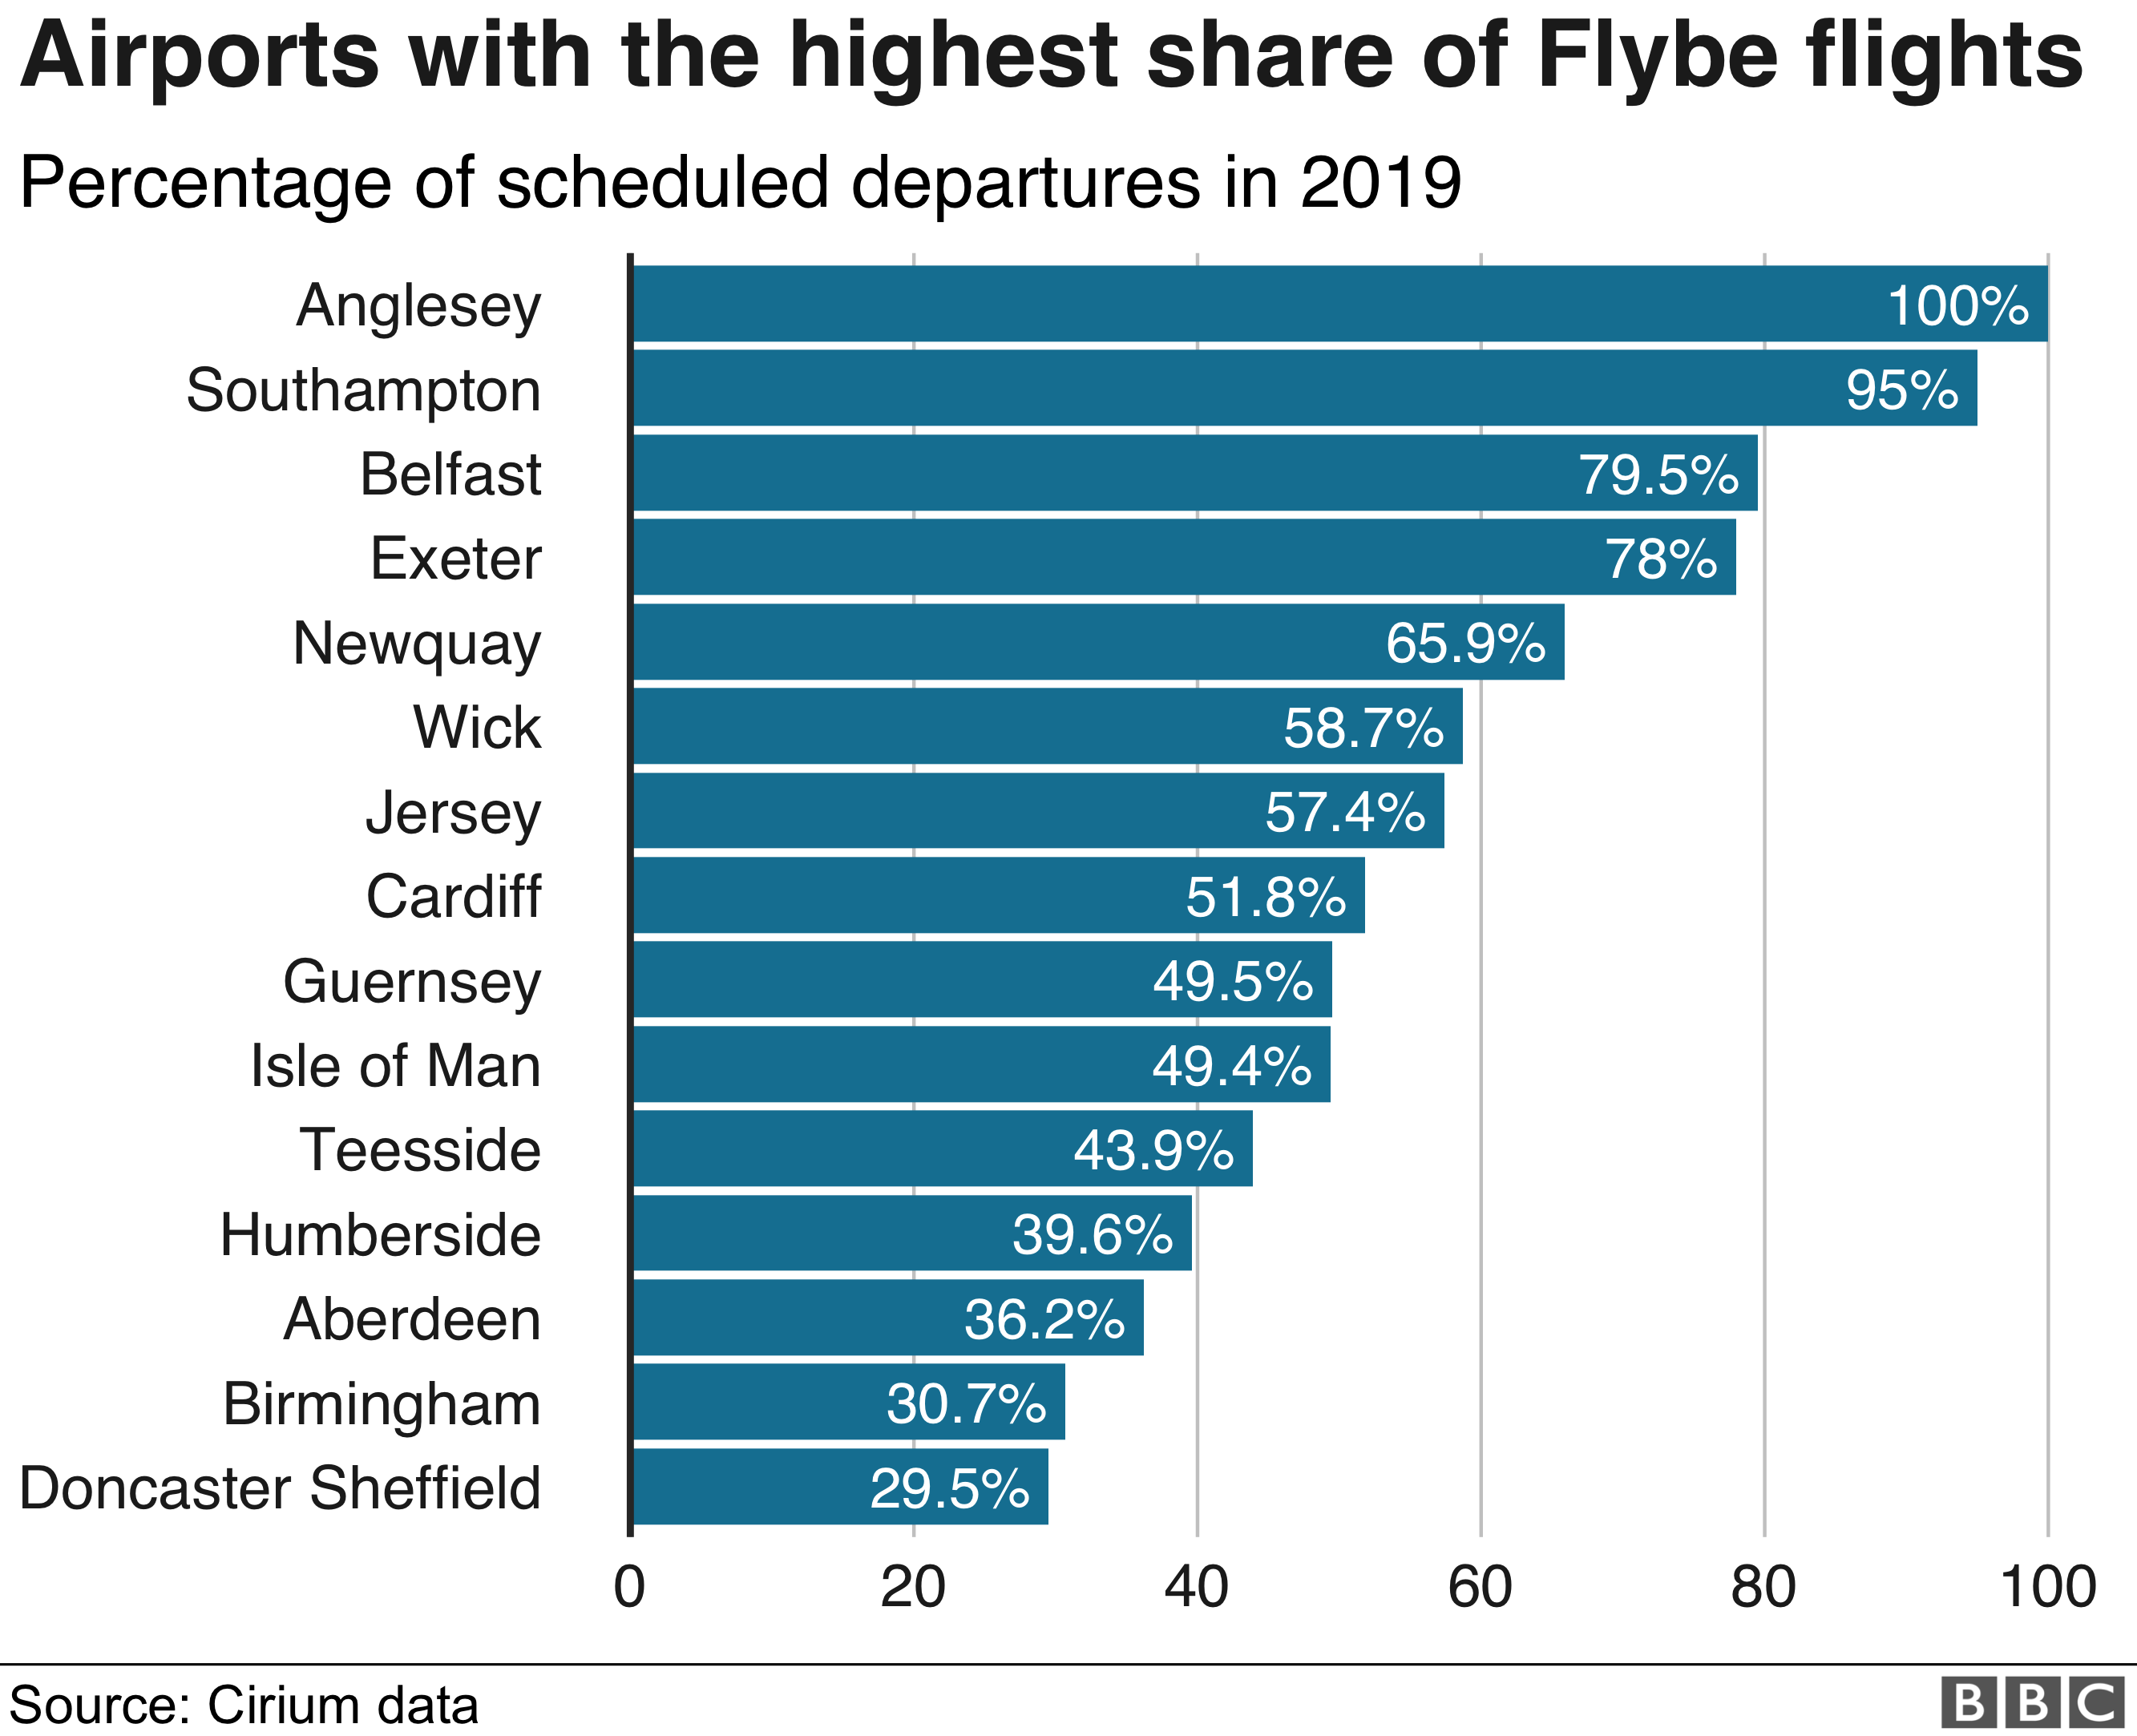 Flybe flight share